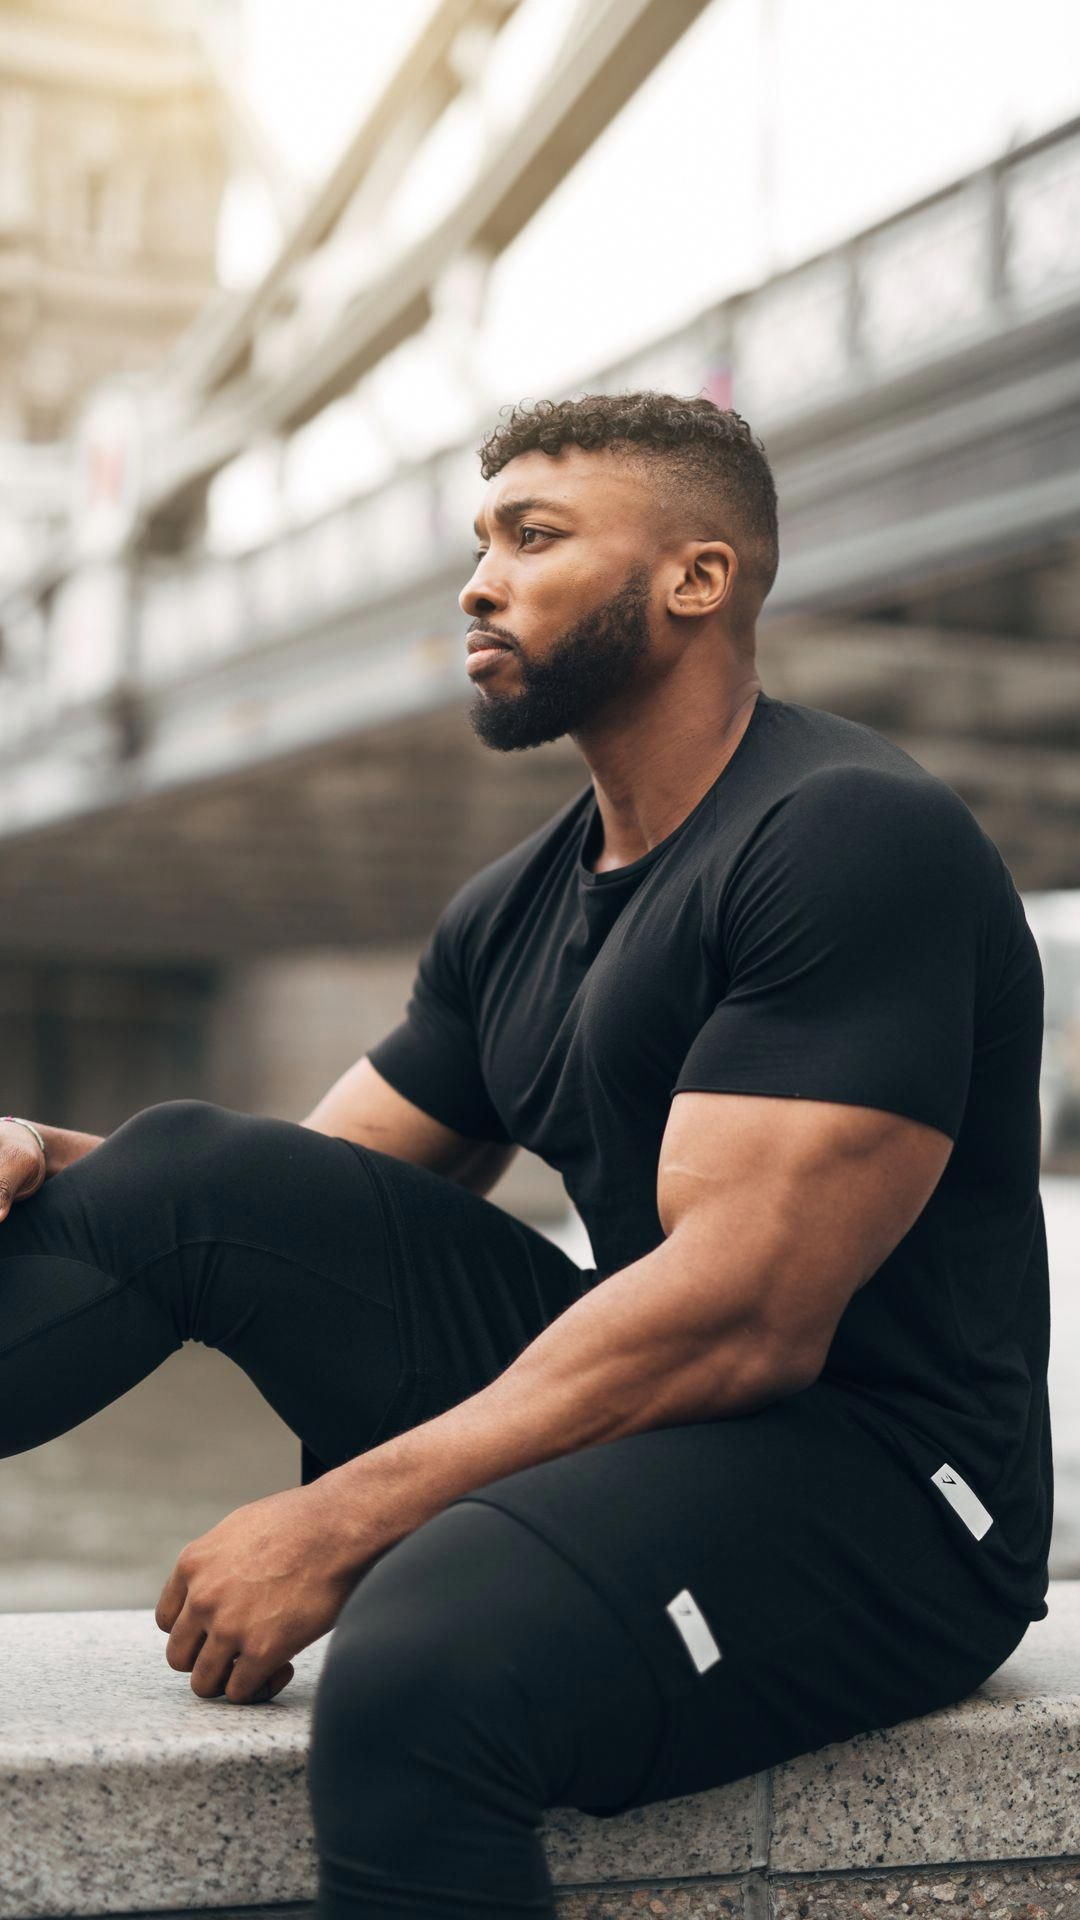 Gyms With Classes Near Me CheapGymsInBoston